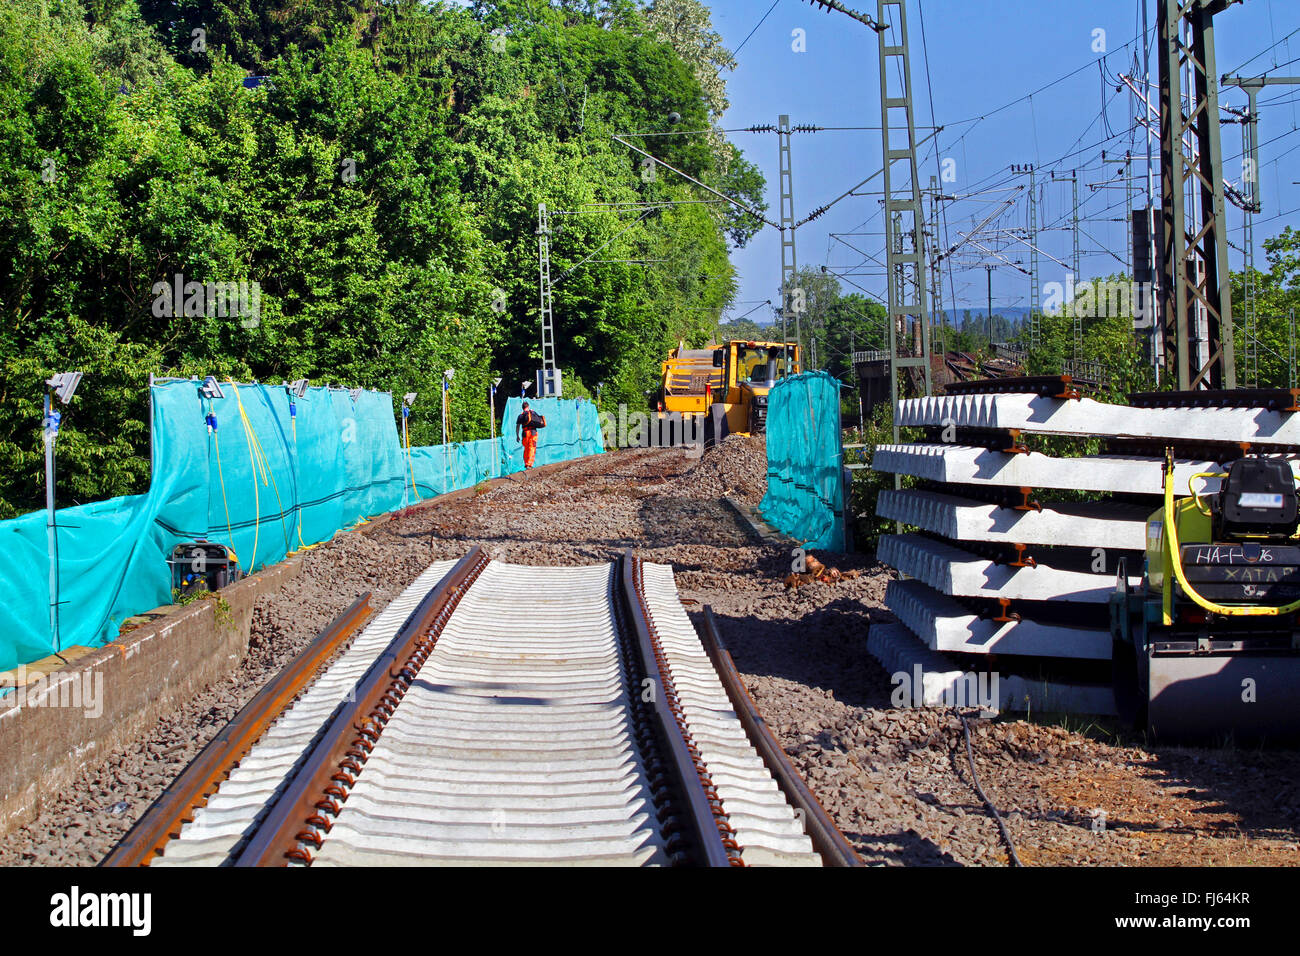 new modern track system with concrete sleepers, Germany - Stock Image